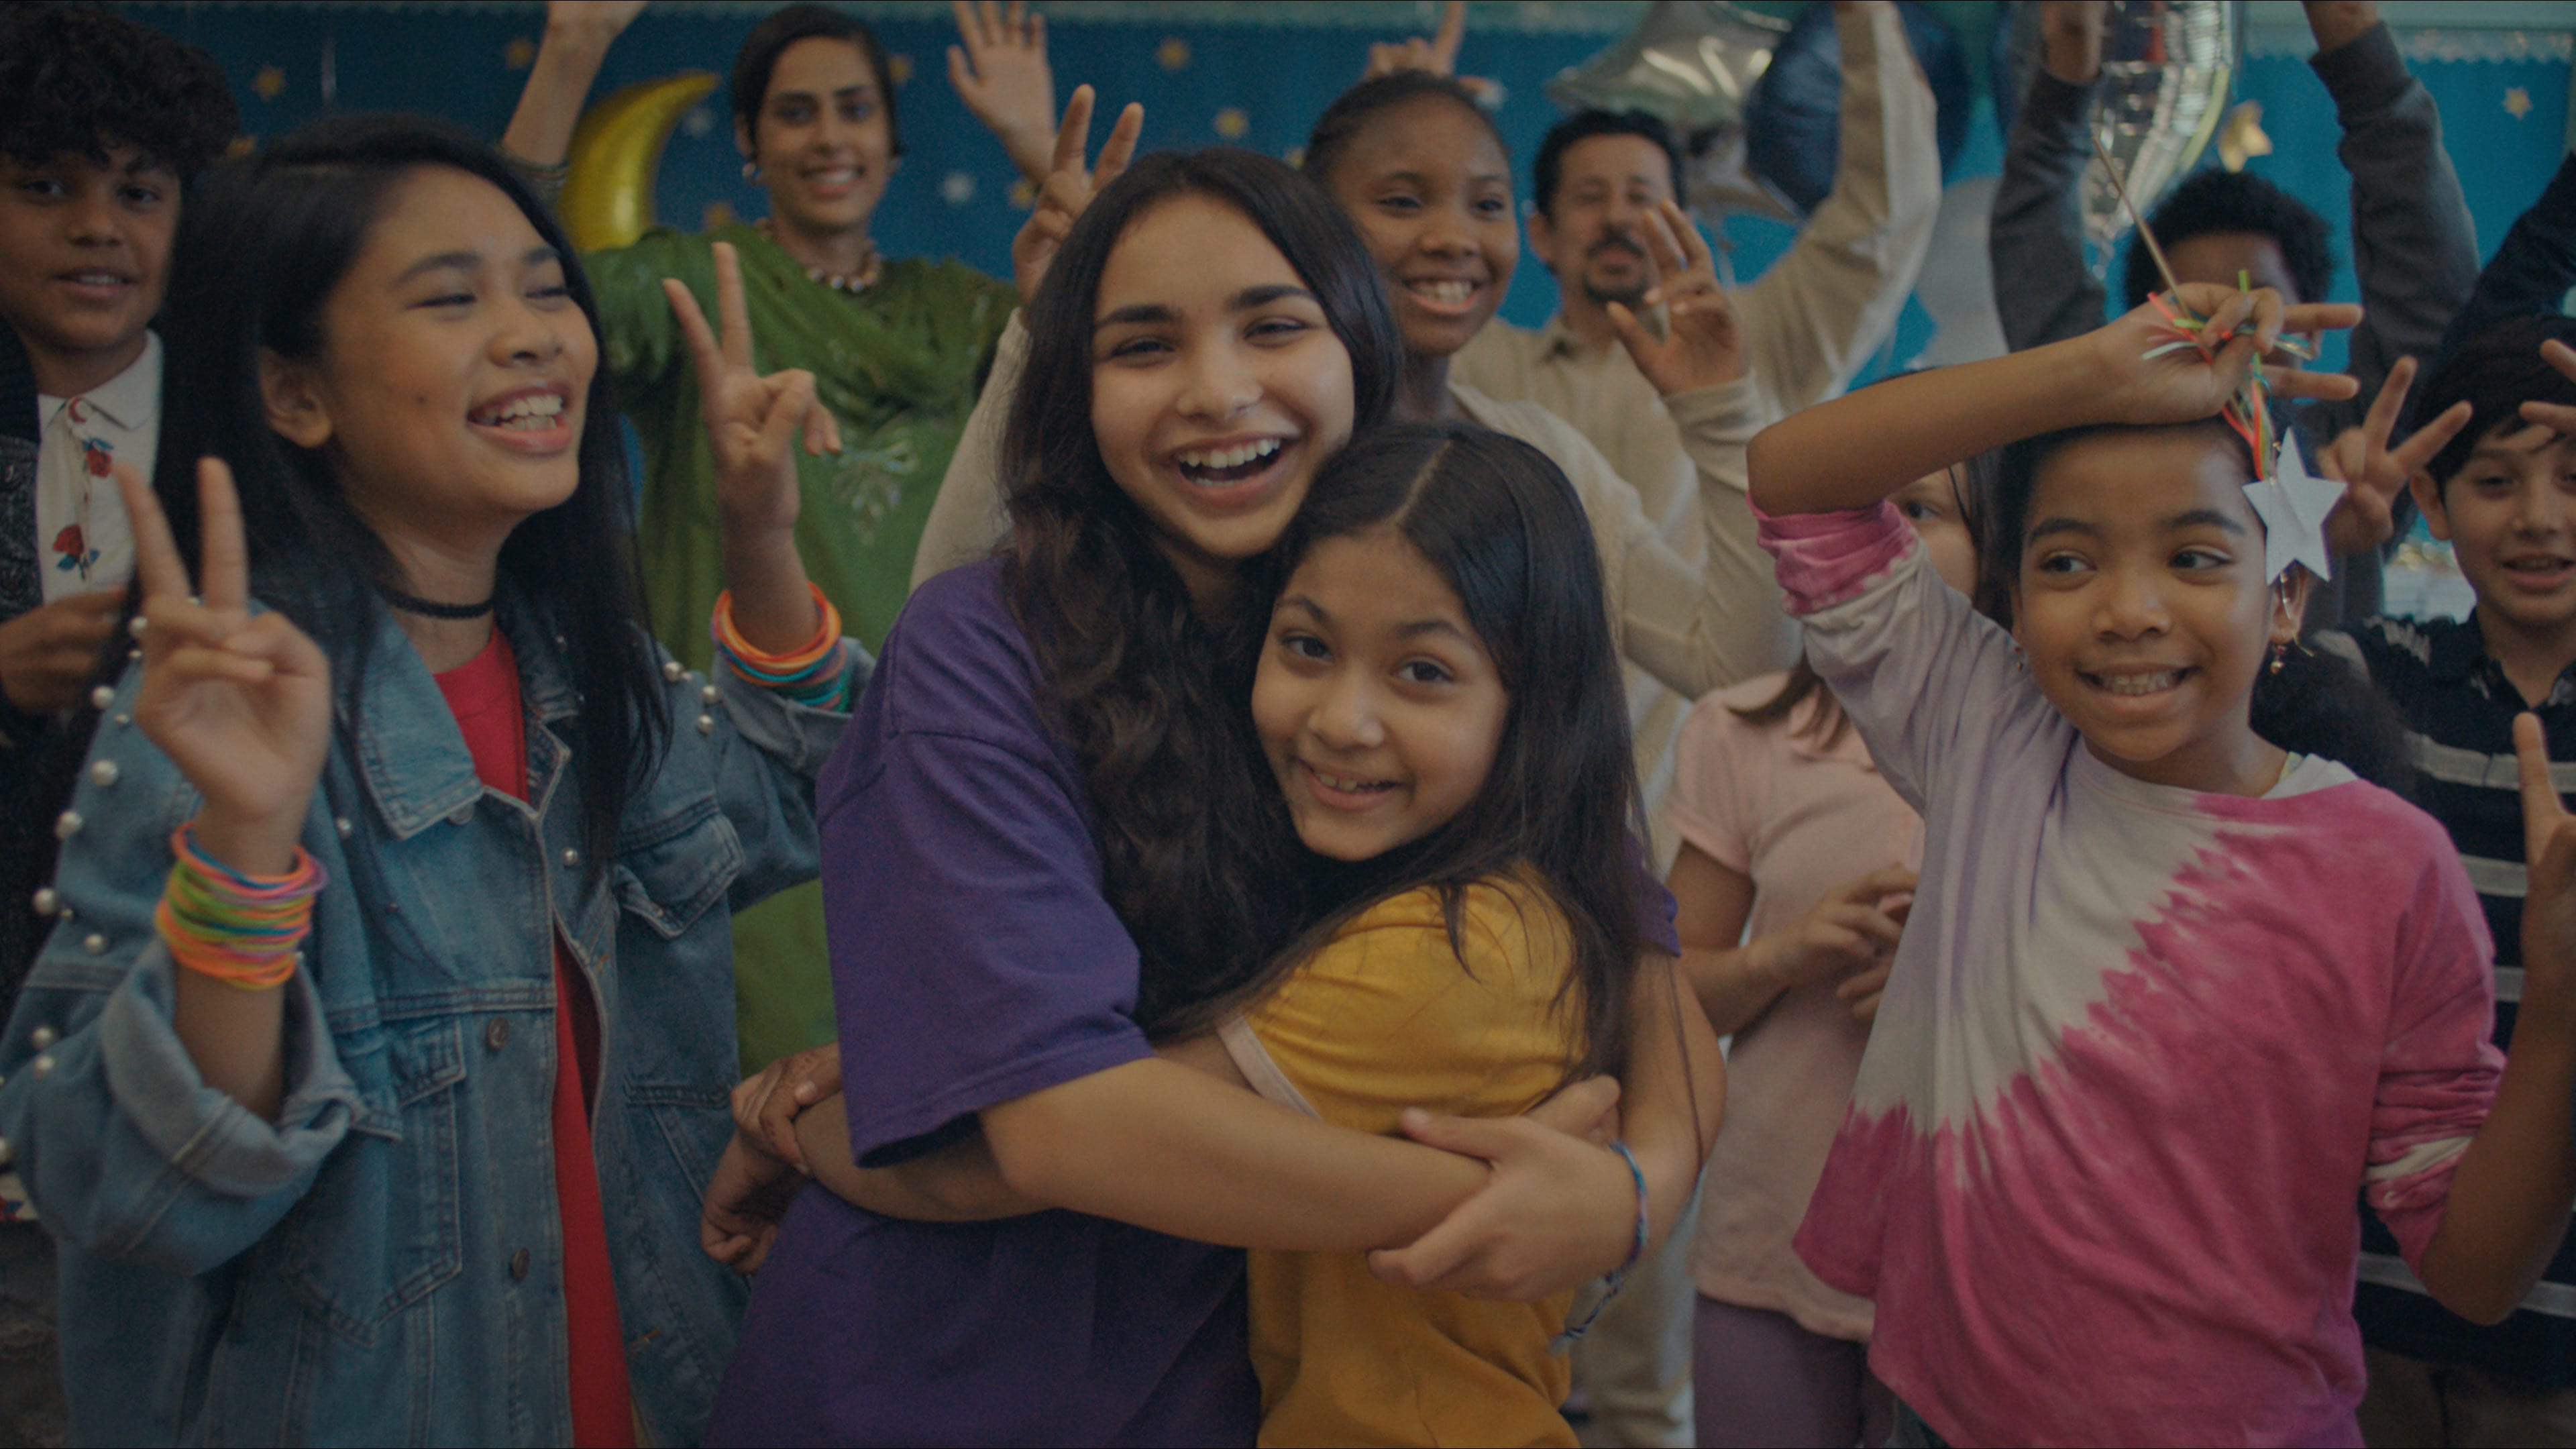 """(Center, l-r): Jenna Qureshi as Zainab and Shanessa Khawaja as Ameena in Disney's """"LAUNCHPAD"""" Season One short, """"AMERICAN EID,"""" Written and Directed byAqsa Altaf.Photo courtesy of Disney. © 2021 Disney Enterprises, Inc. All Rights Reserved."""